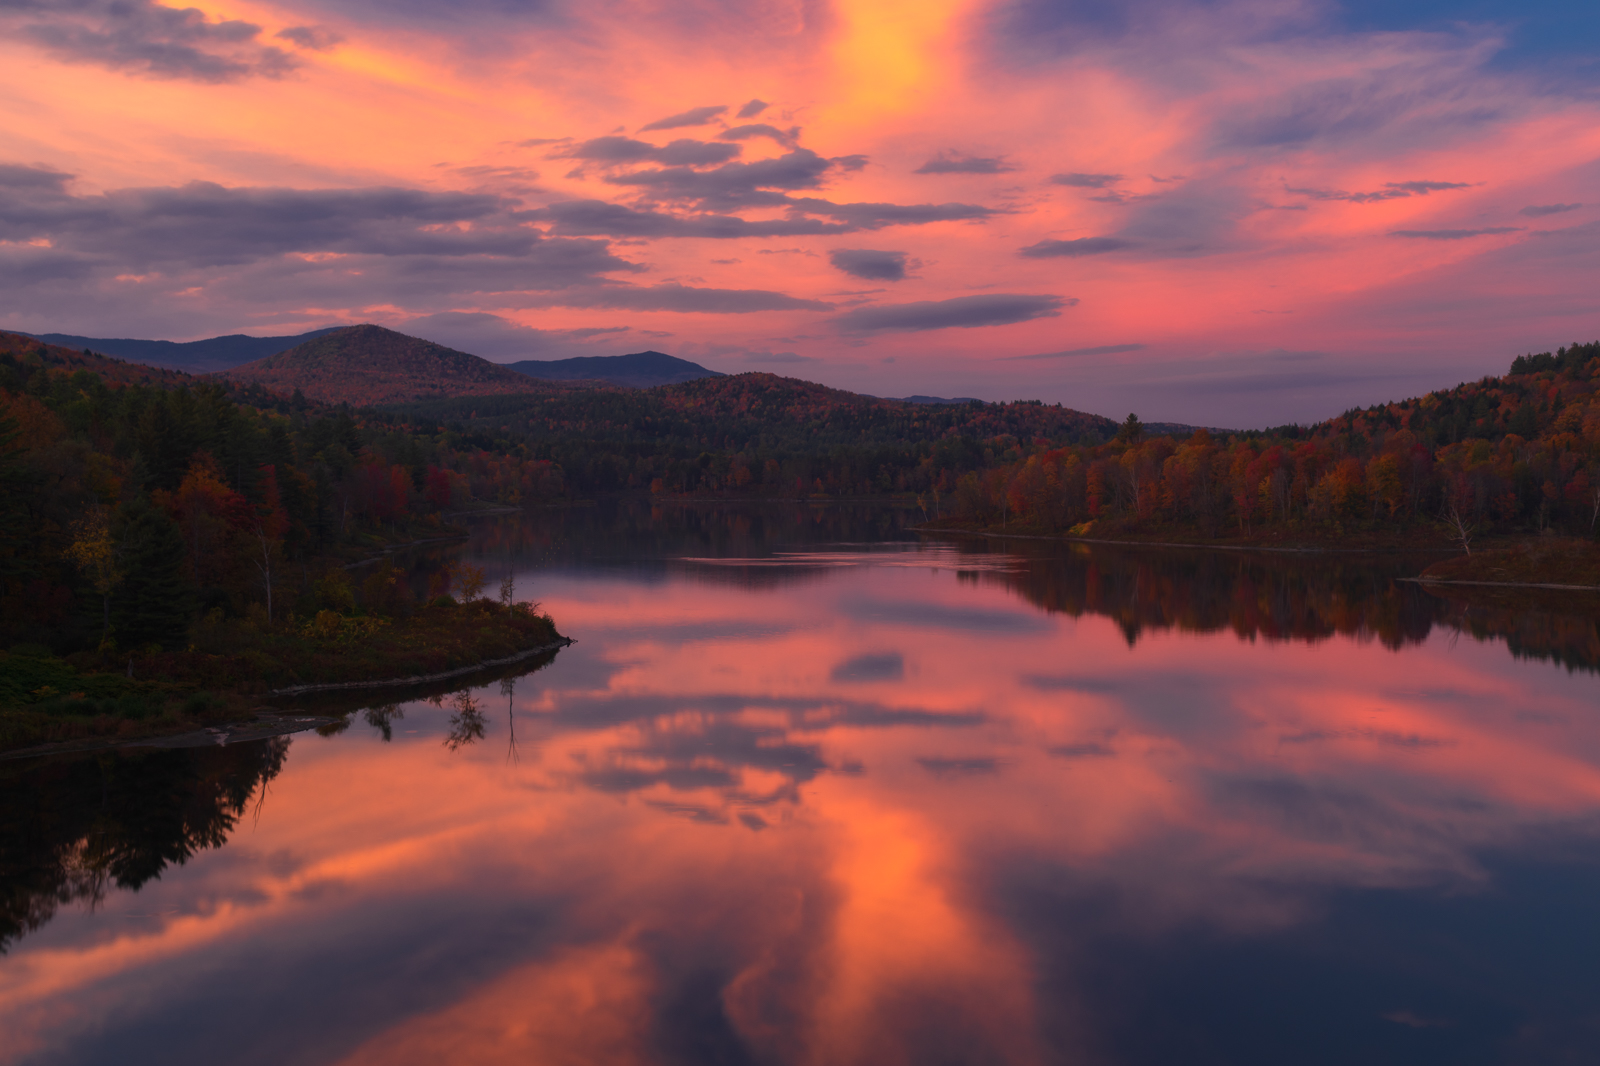 Fiery autumn sunset reflections, Northern Vermont